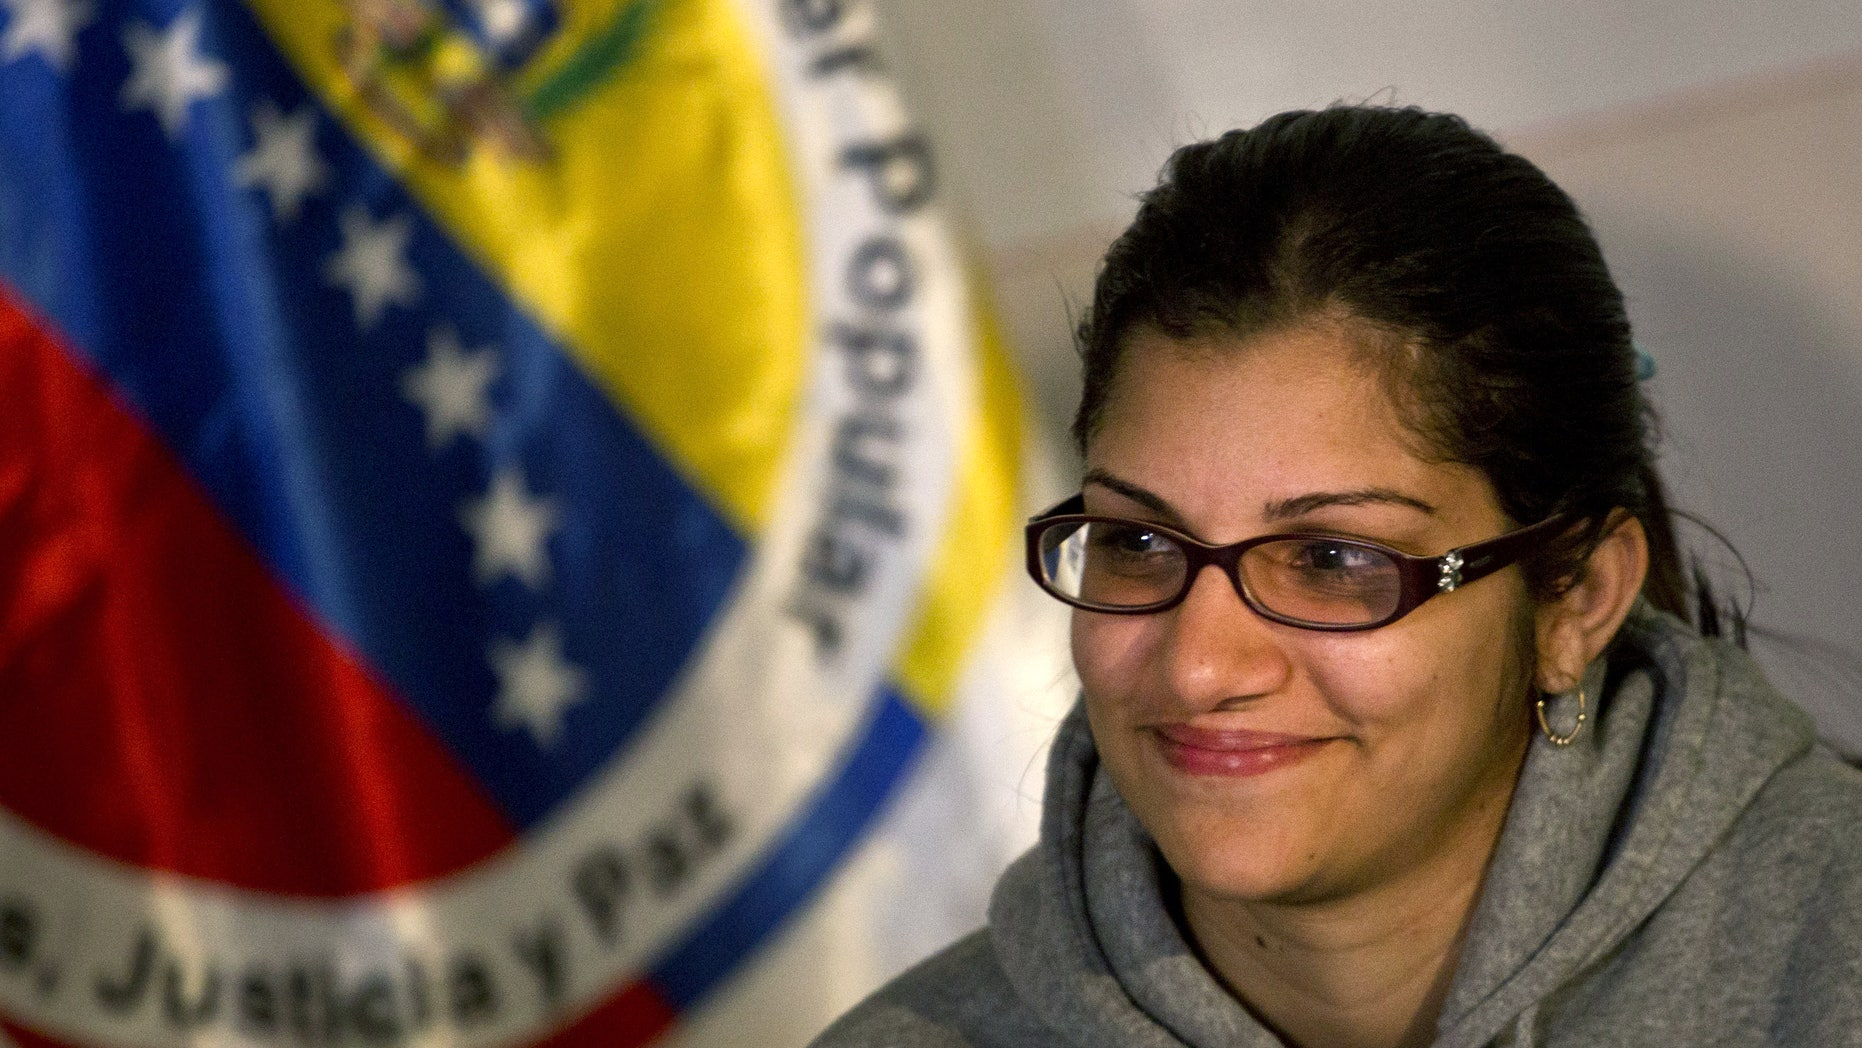 Nairobi Pinto gives a press conference following her release in Caracas, Venezuela, Monday, April 14, 2014.